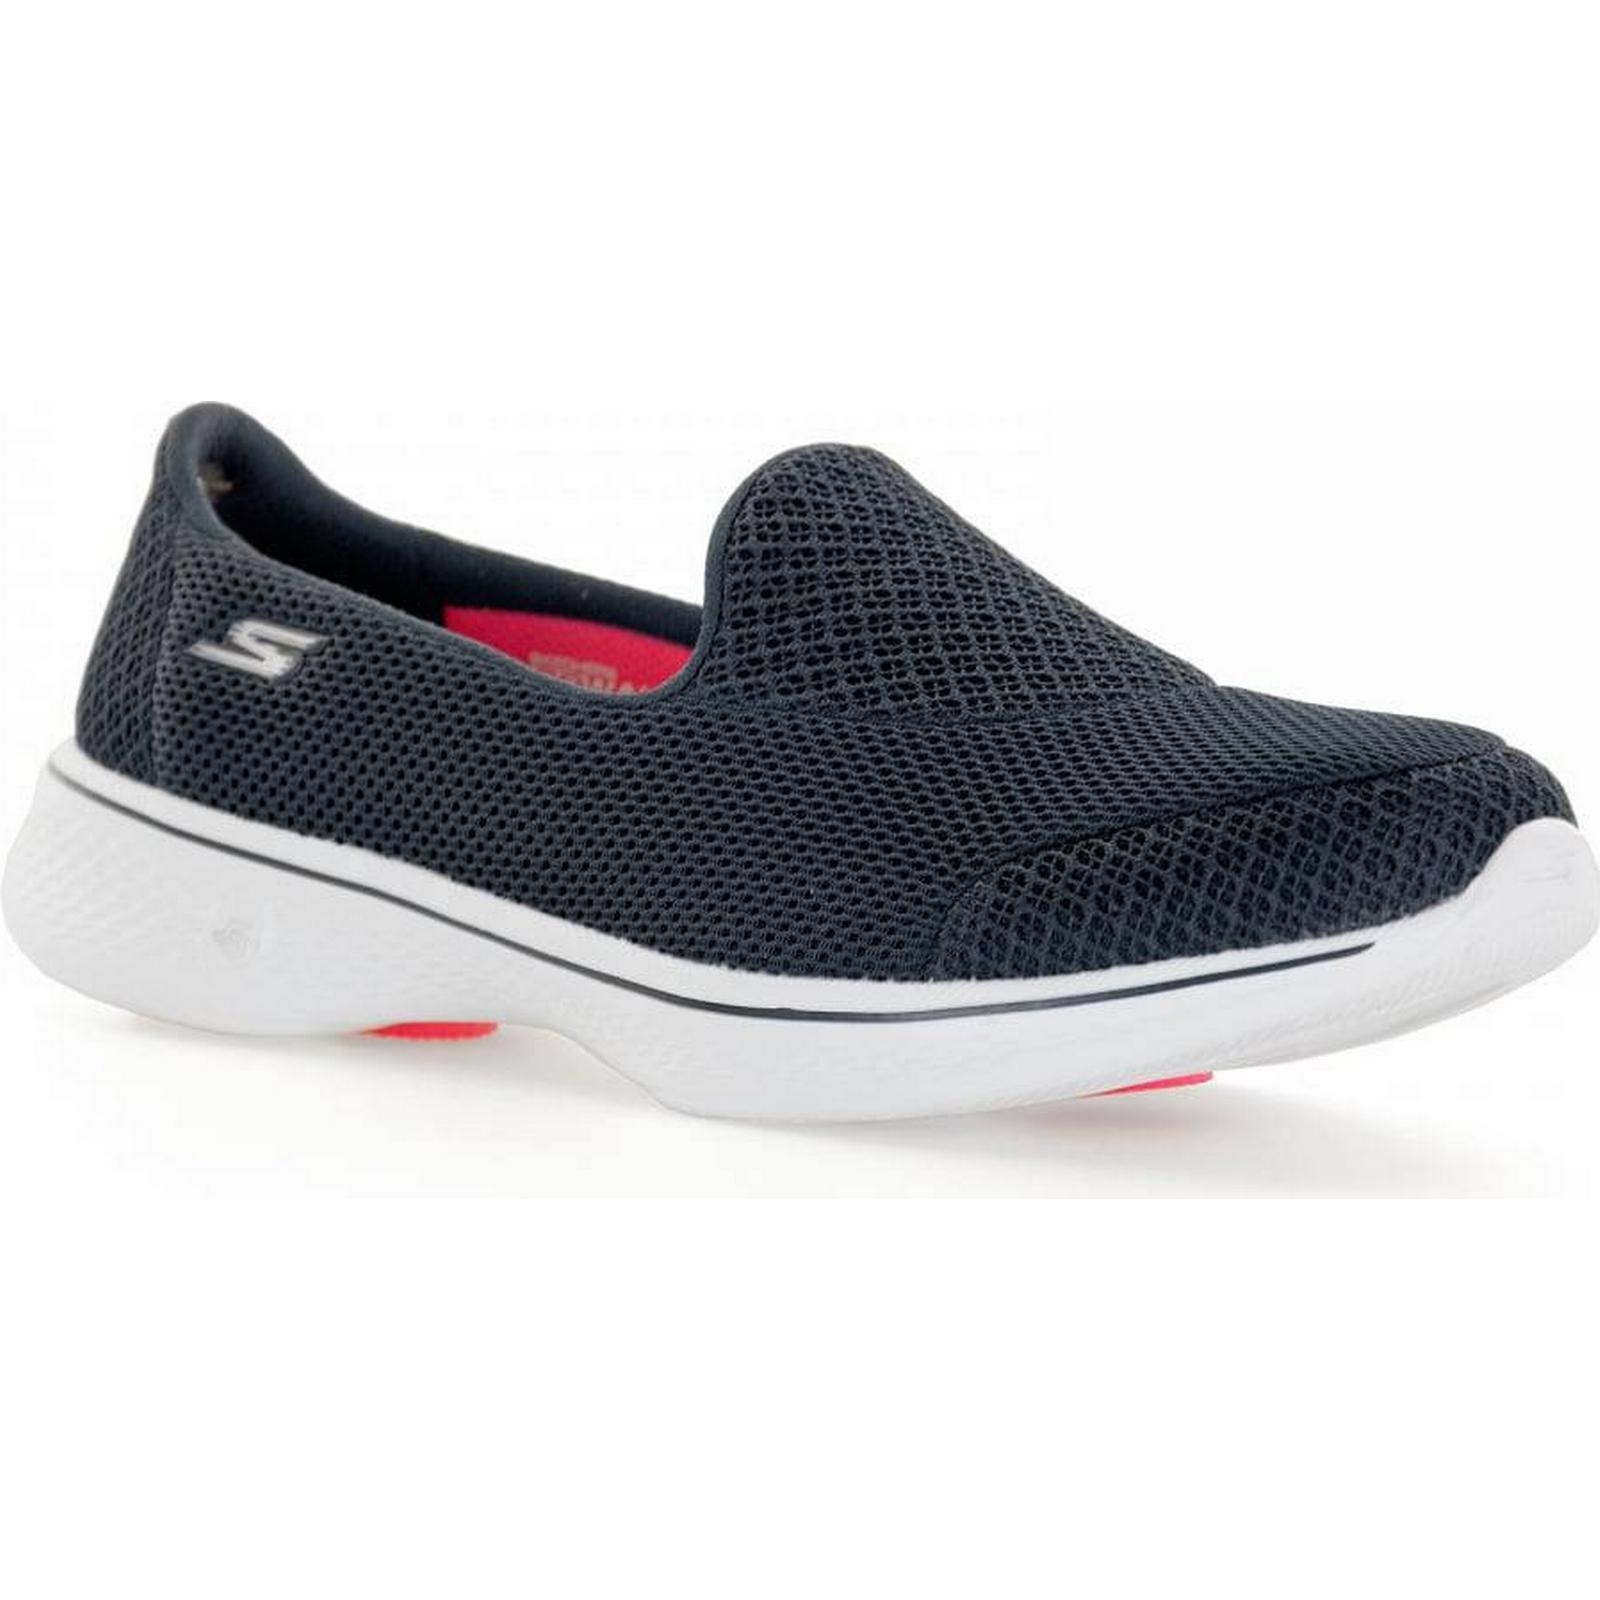 Skechers Womens Go Walk 5, 4 Trainers (Navy) Size: 5, Walk Colour: NAVY 2b2bb4